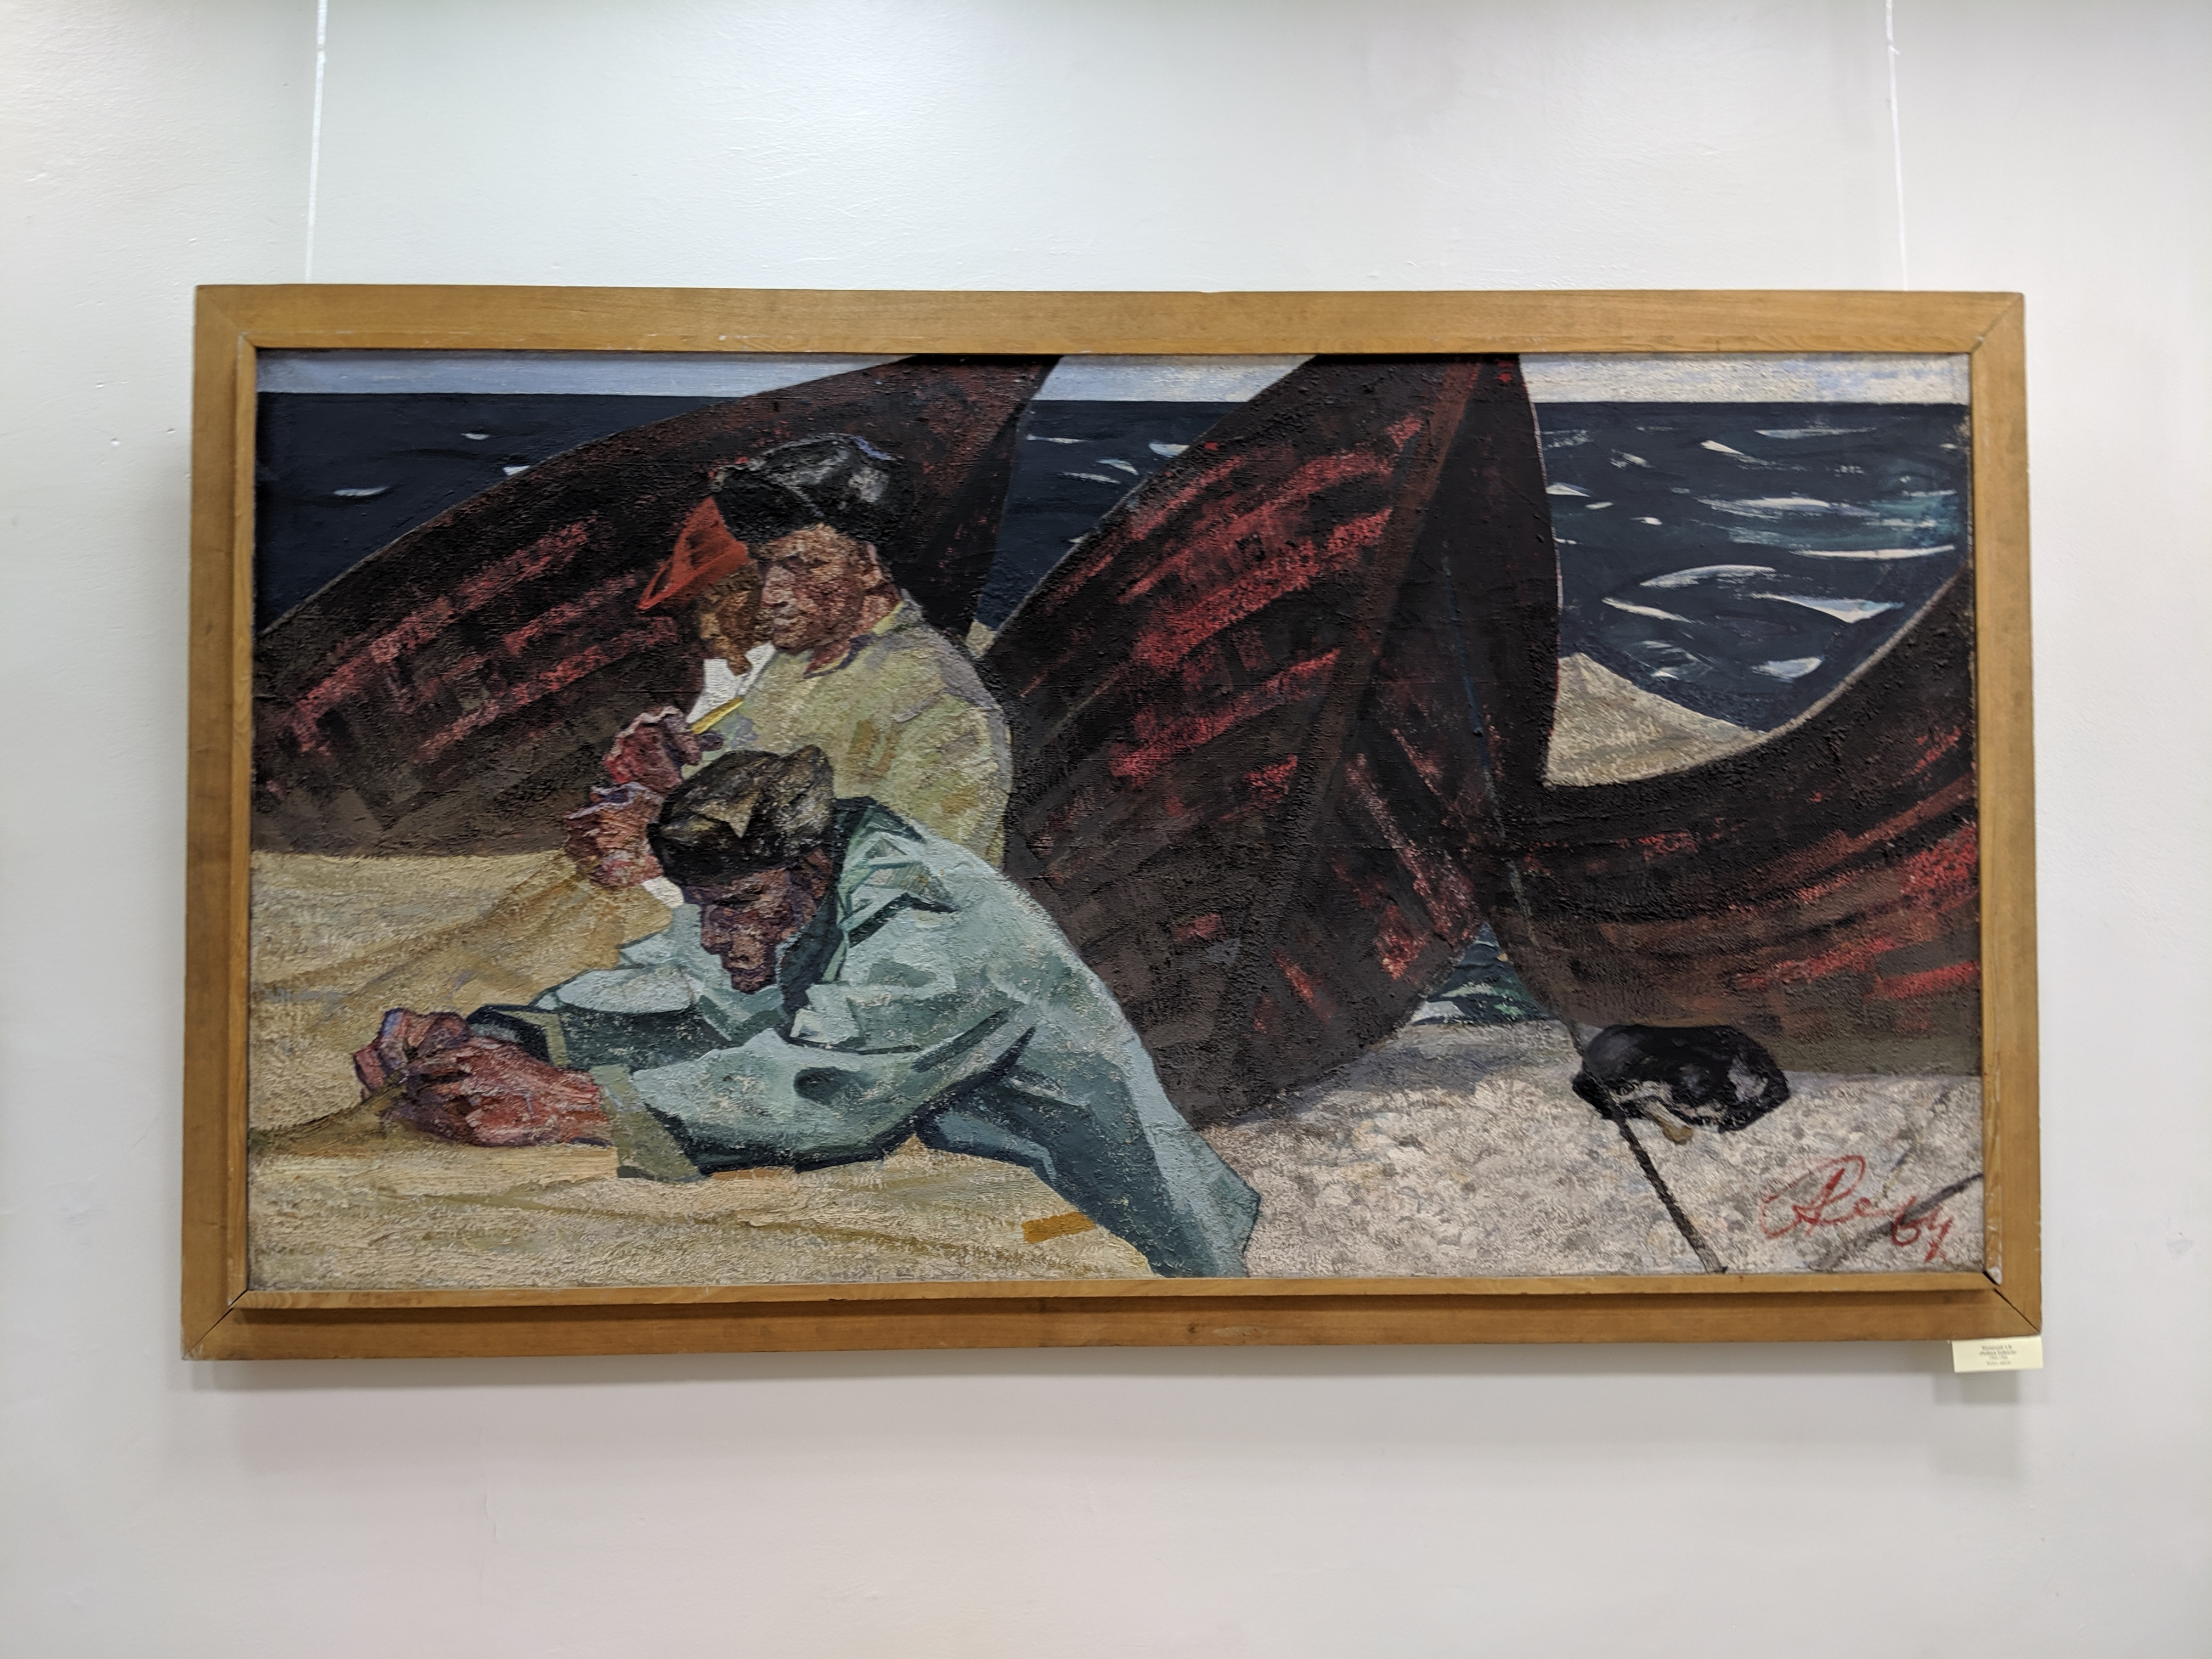 Painting at art museum in Ulan-Ude